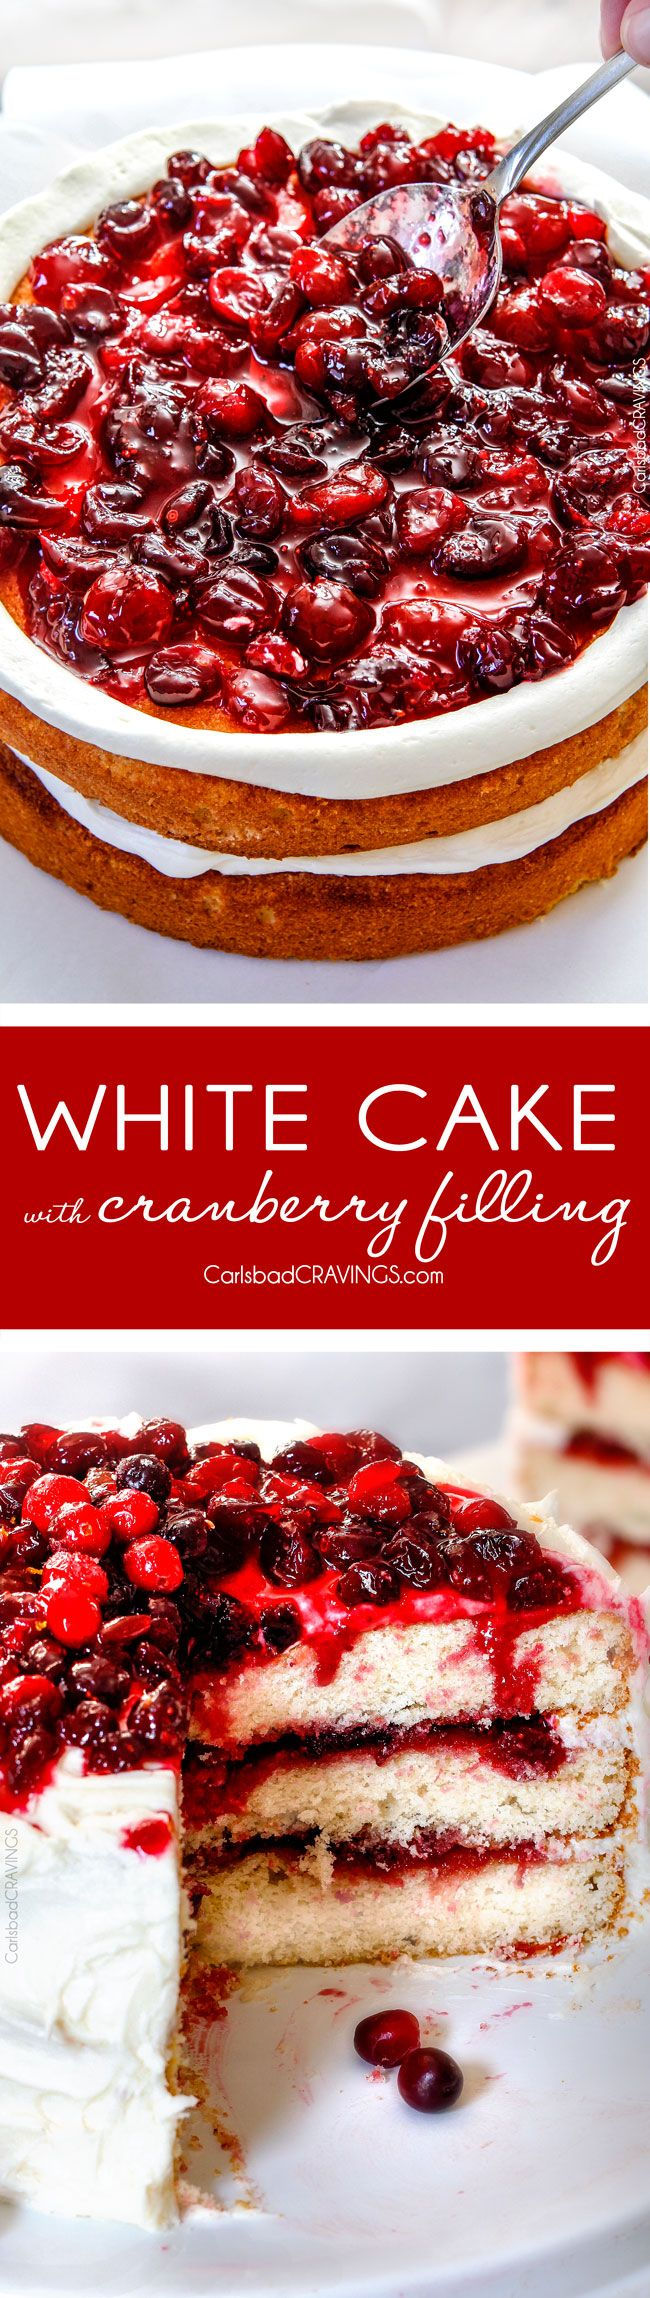 White Cake with Cranberry Filling and Buttercream Frosting – everyone always asks me for this recipe!  The moist, bakery style white cake is the BEST ever and the sweet and tangy cranberry filling is melt in your mouth delicious and Christmas festive!   via @carlsbadcraving